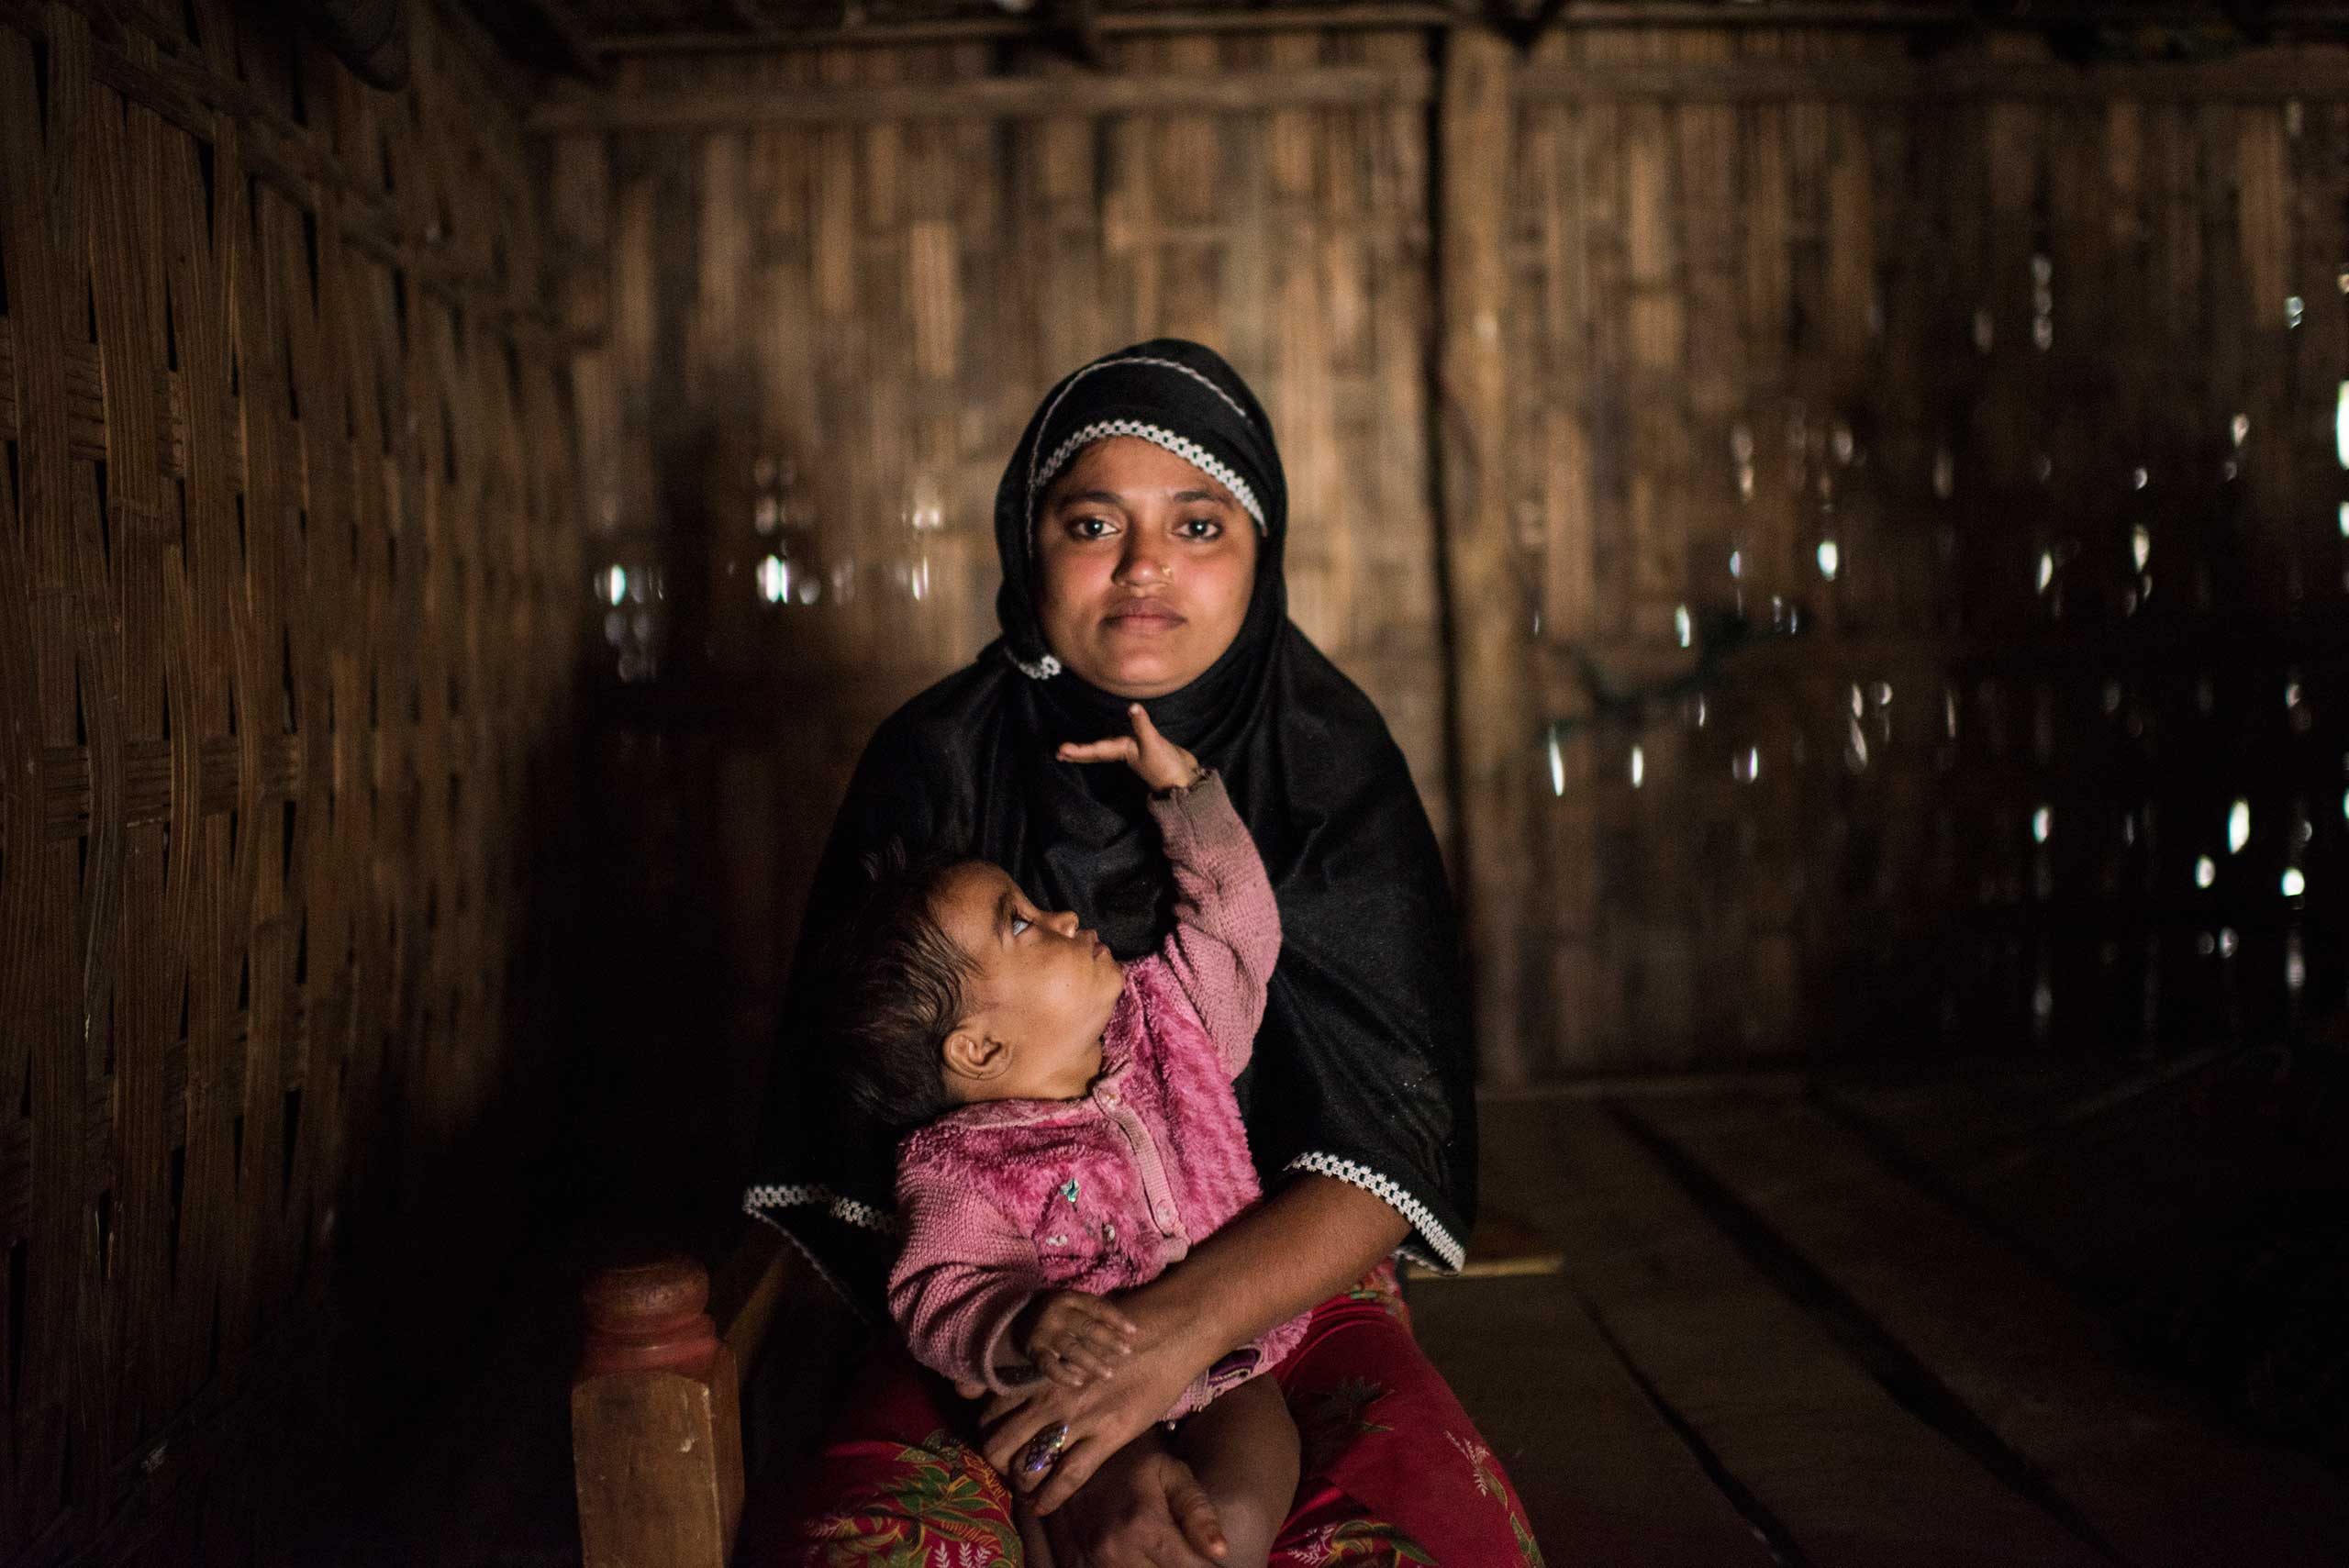 Rohingya woman Shahda Begham, 25, poses for a portrait with Jannatara, 2, one of three daughters, in a home in an informal settlement in Shamlipur, in Bangladesh, Jan. 10, 2016.   Shahda was living in Mongdo with her husband when their village was overrun by violence. Military came in and shot her husband--killing him--and took her and several other women into the forest and raped her repeatedly.    The military beat us; if somebody didn't want to go, it was rape. They tortured me in the forest; even when they pulled us from the bush they beat us.   She later fled to Bangladesh with her three children. The Rohingya are systematically marginalized, and forced into formal and makeshift camps across Bangladesh and Myanmar. They often occupy hard labor jobs, like riding cycle rickshaws, working in the ice factories, fishing, and manual labor jobs they pick up daily.